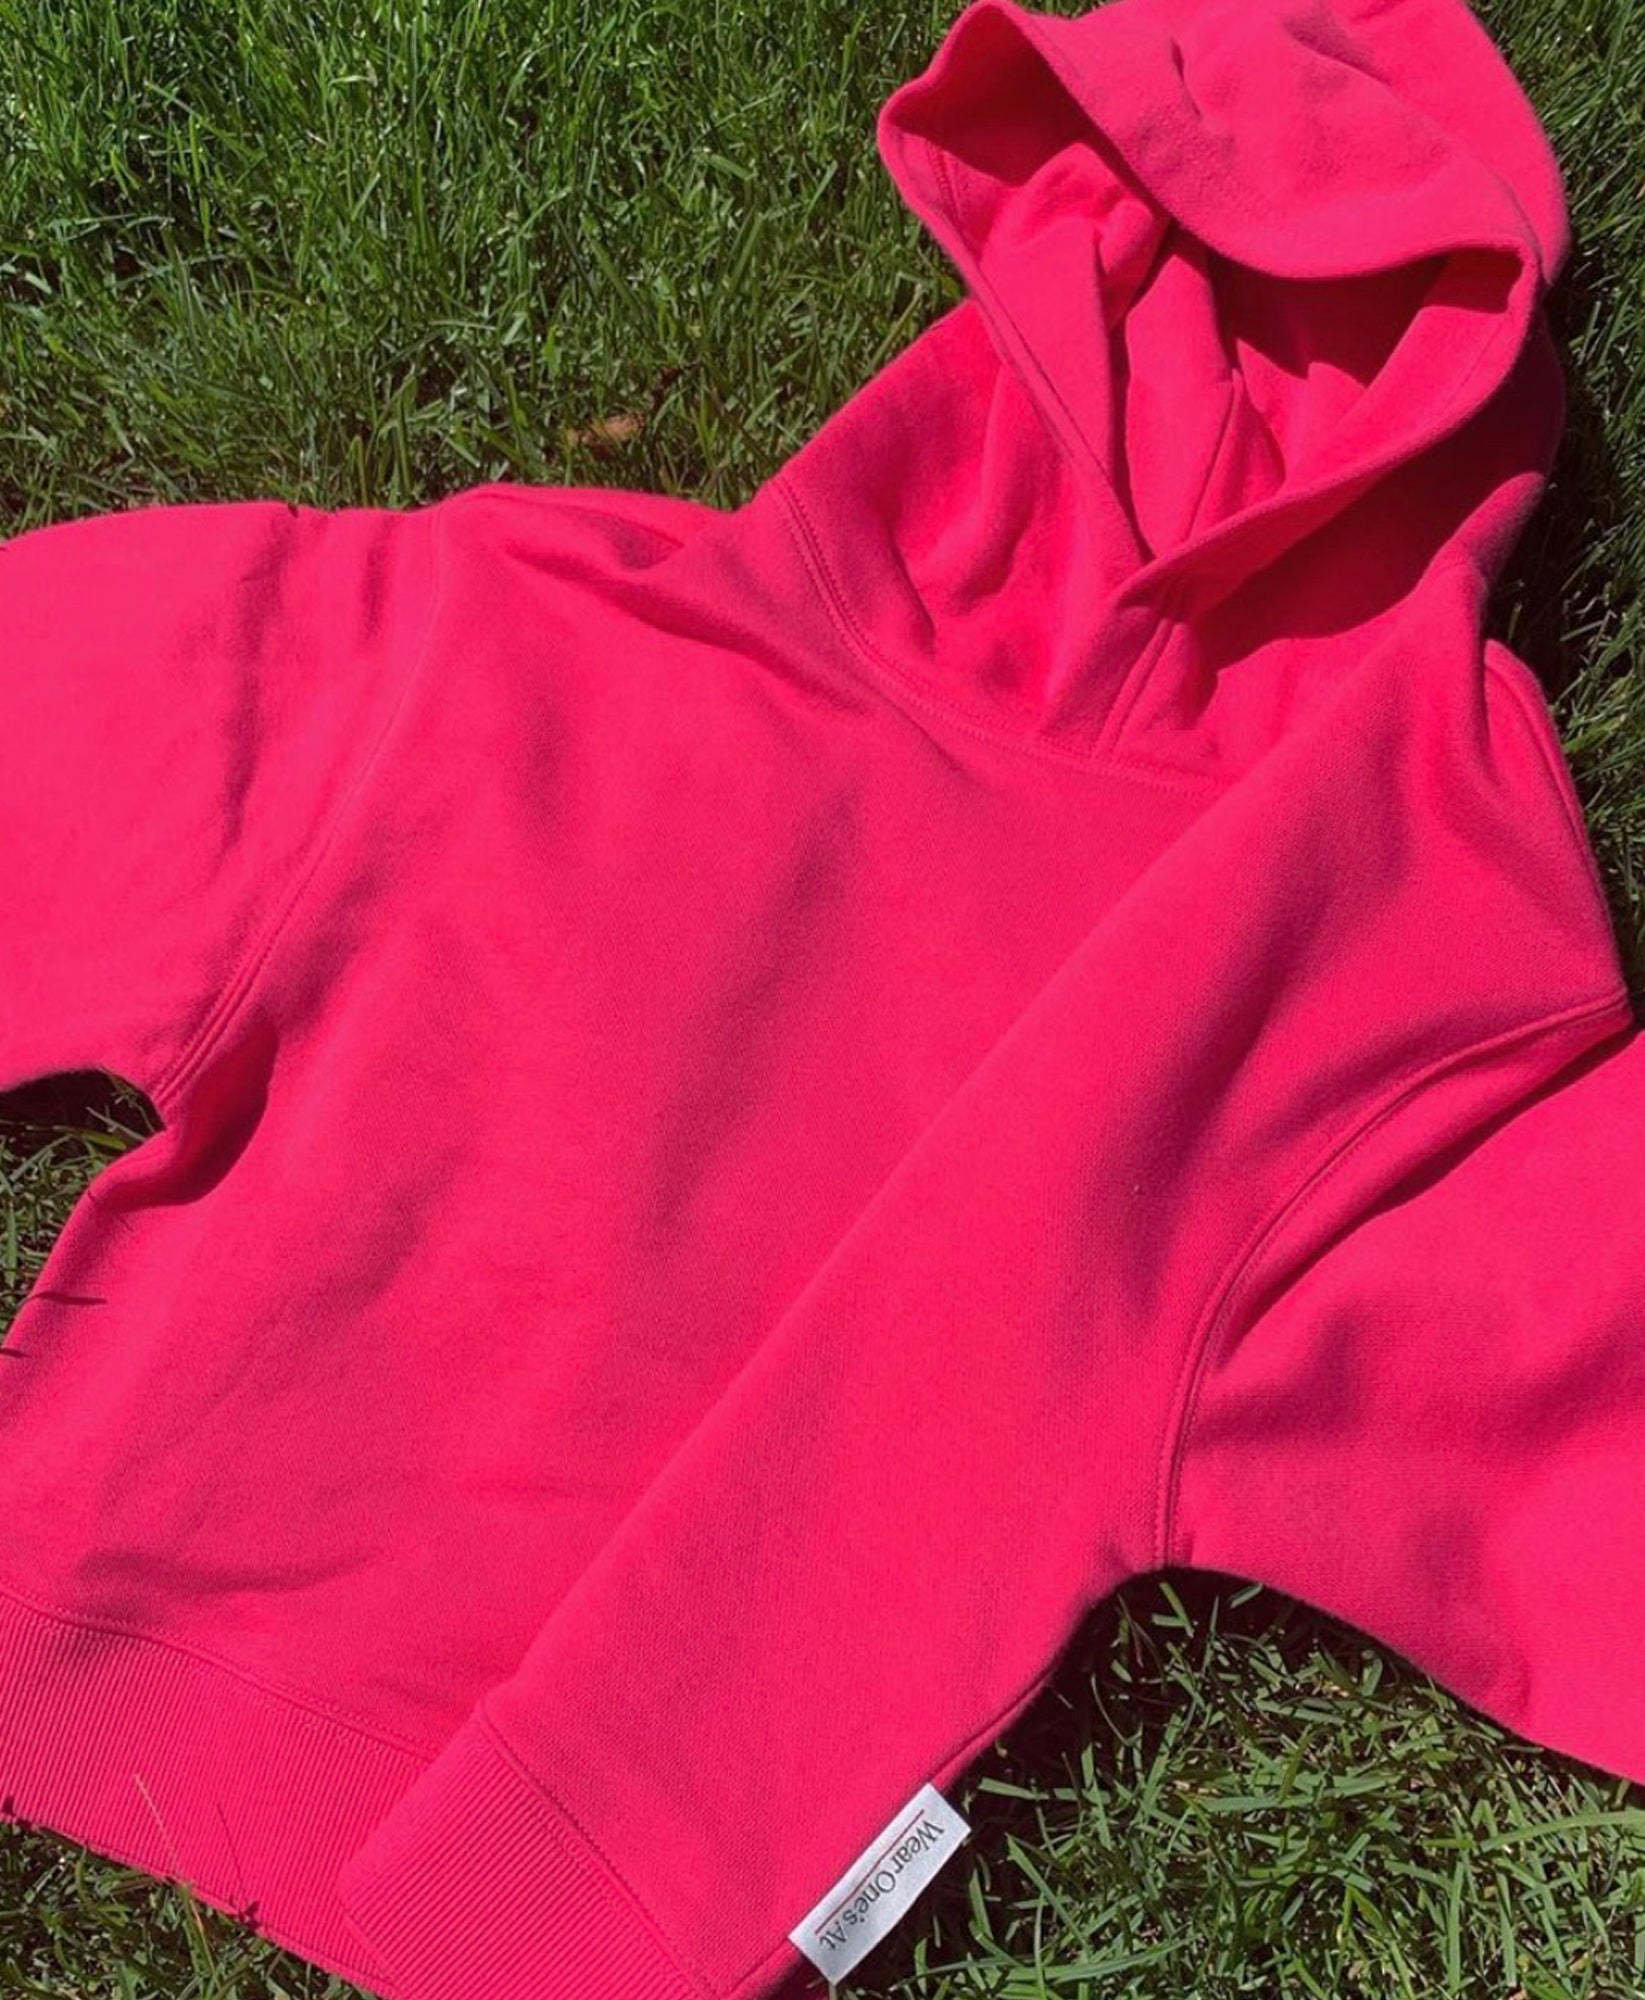 Wear One's At French Terry Cropped Hoodie in Watermelon Laying on Grass Front View